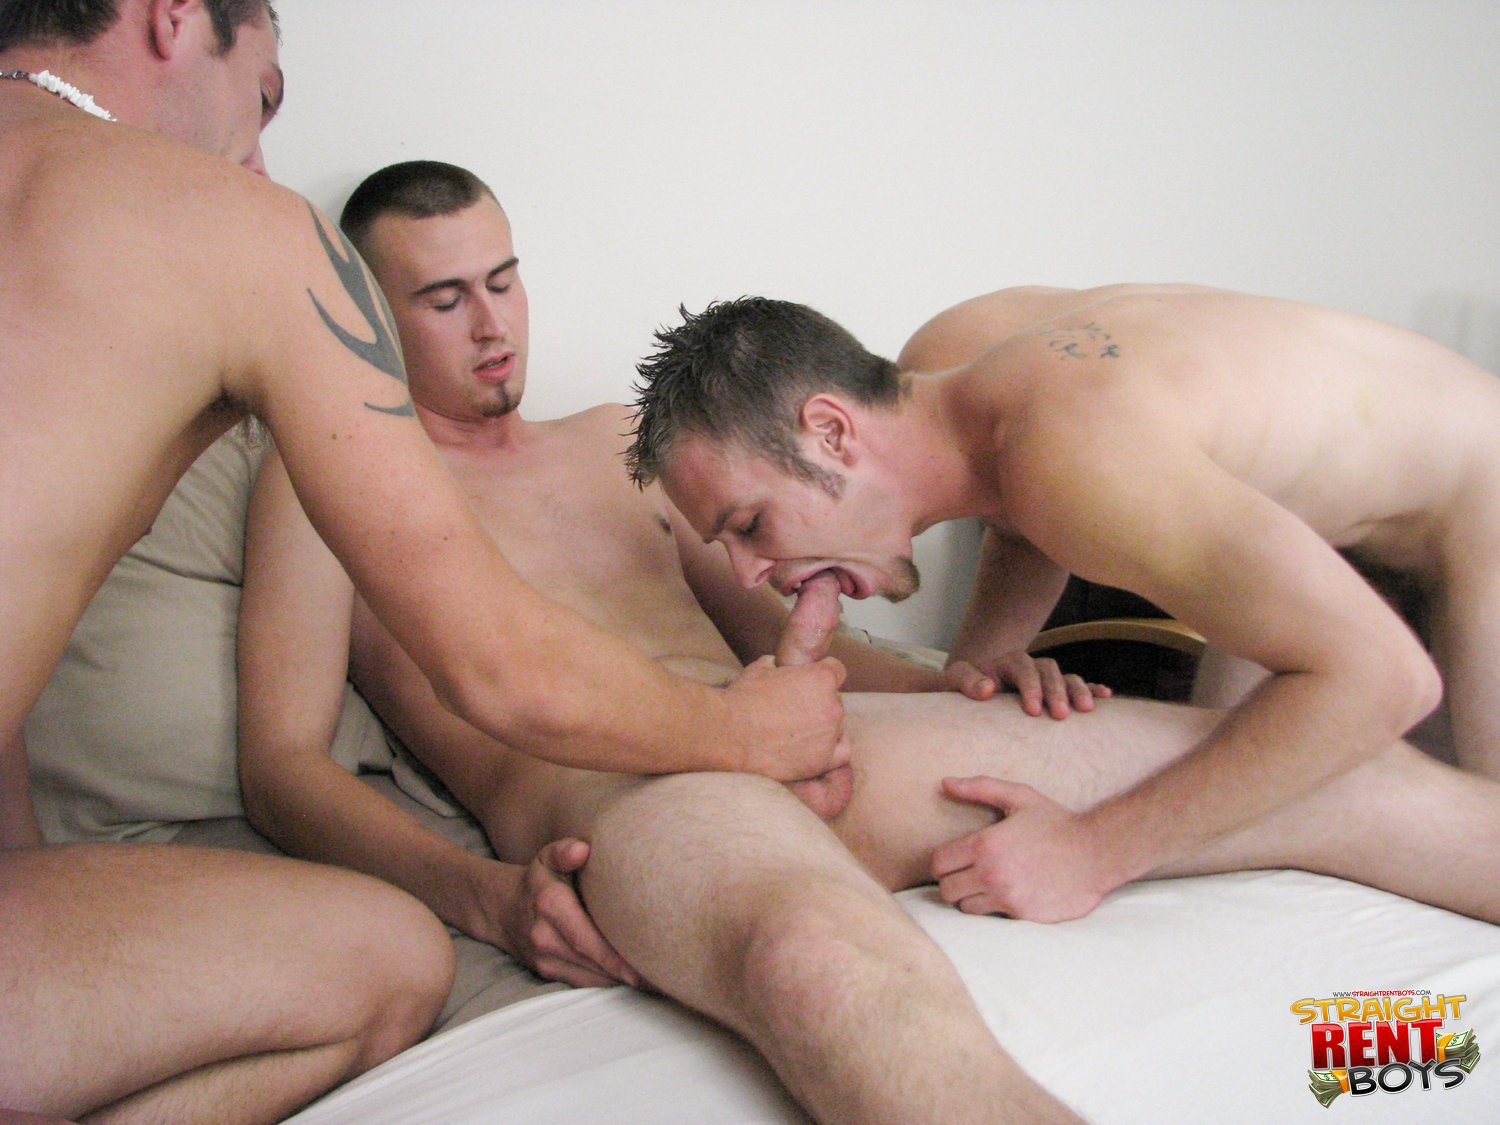 Male group masturbation straight vids gay